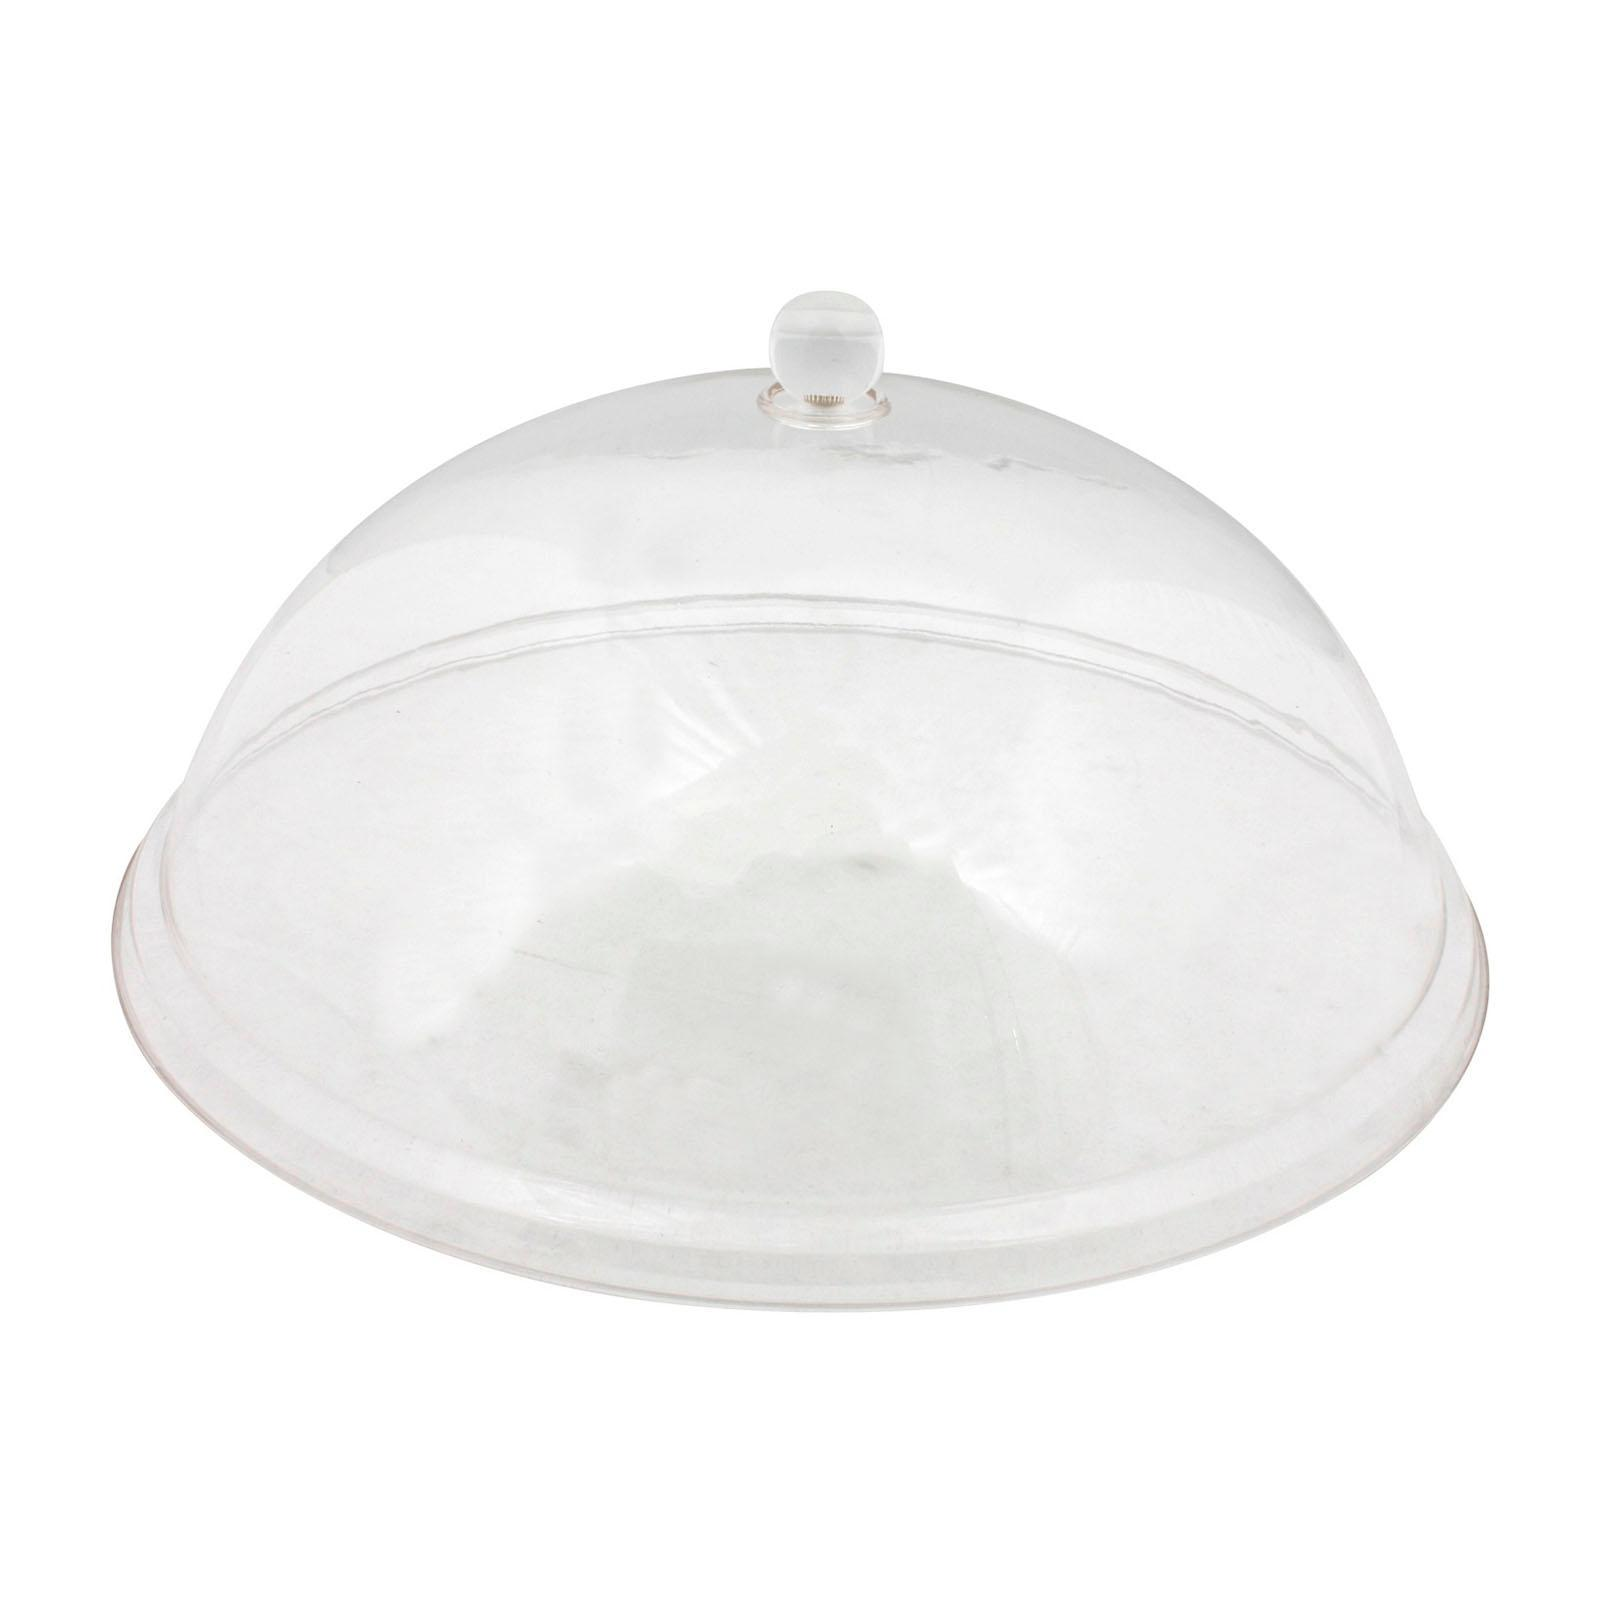 ToTT Clear Polycarbonate Round Dome Cover - 34 CM - By ToTT